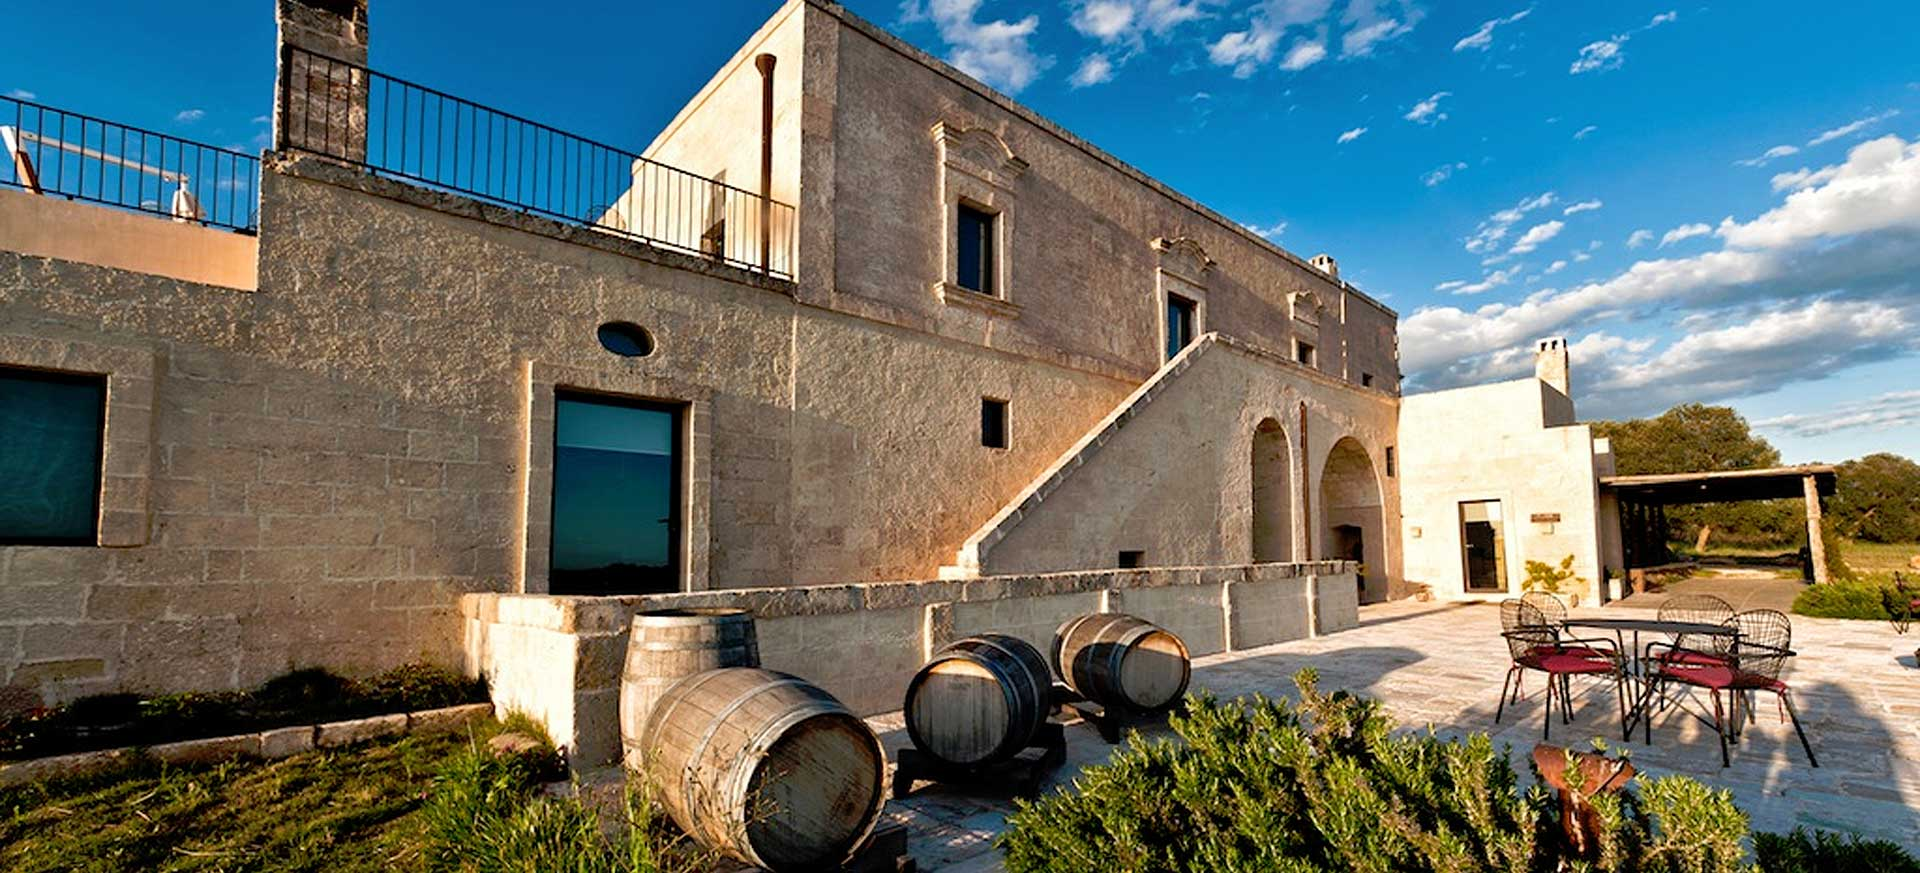 Luxury wine resort hotel Manduria - Taranto